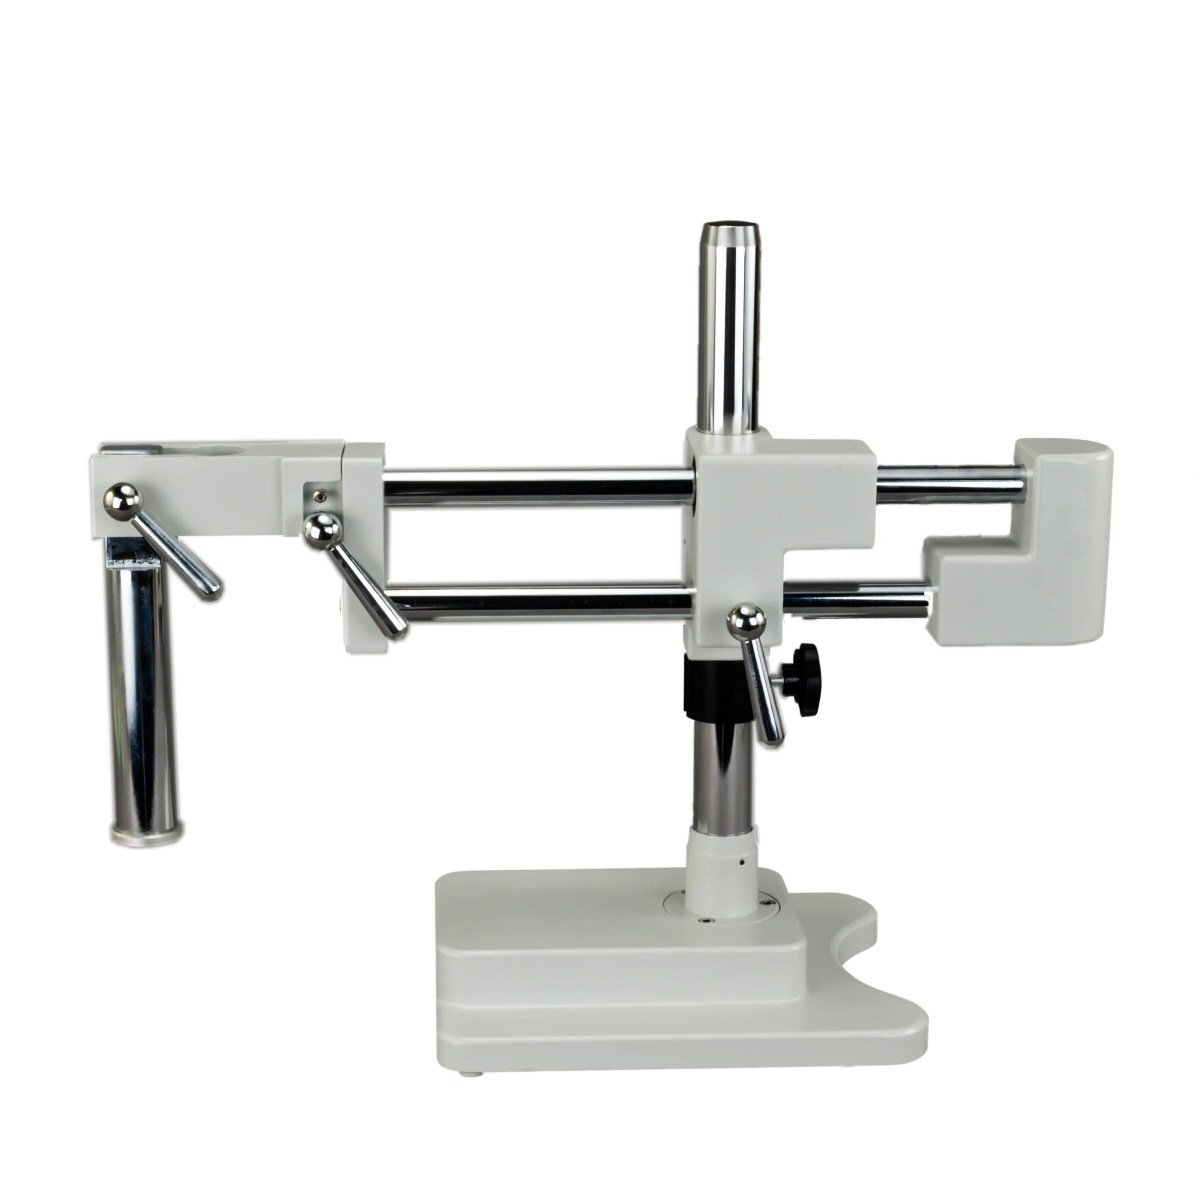 OMAX Dual-bar Boom Stand for Stereo Microscopes A602P by OMAX